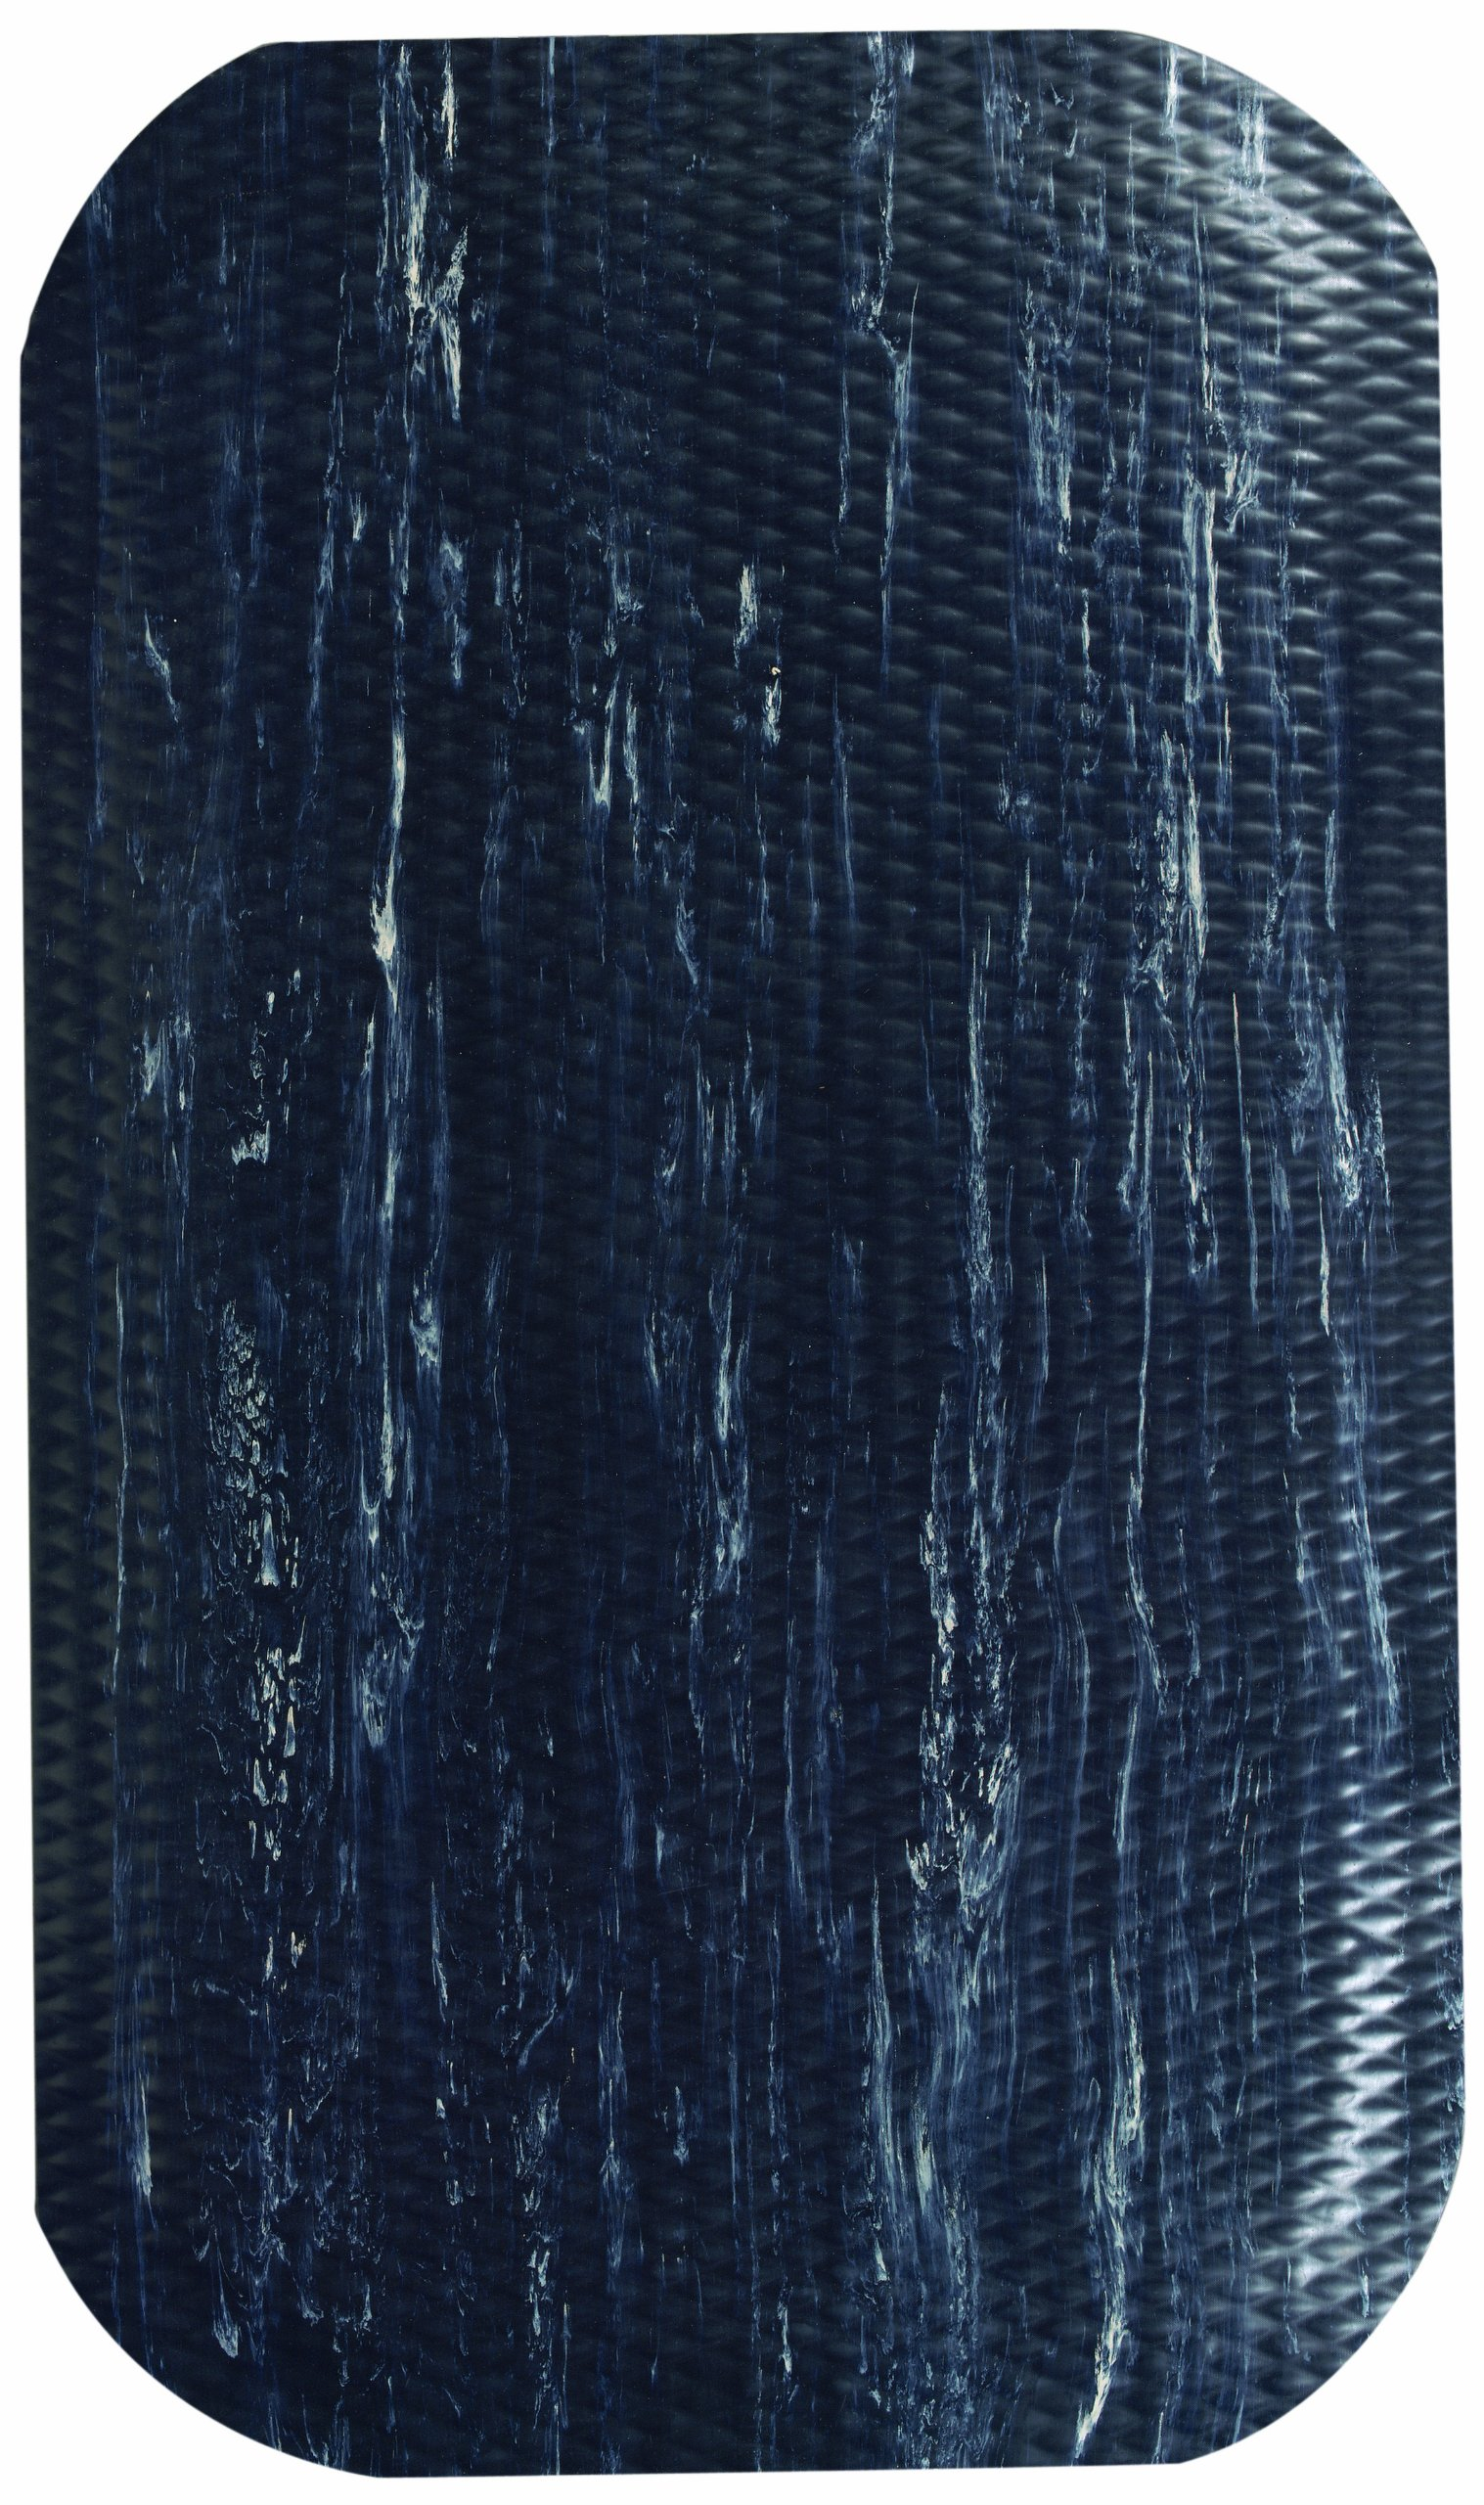 Andersen 449 Hog Heaven SBR/Nitrile Rubber Marble Top Anti-Fatigue Floor Mat, Nitrile/PVC Rubber Cushion Backing, 12' Length x 3' Width, 7/8'' Thick, Midnight Swirl